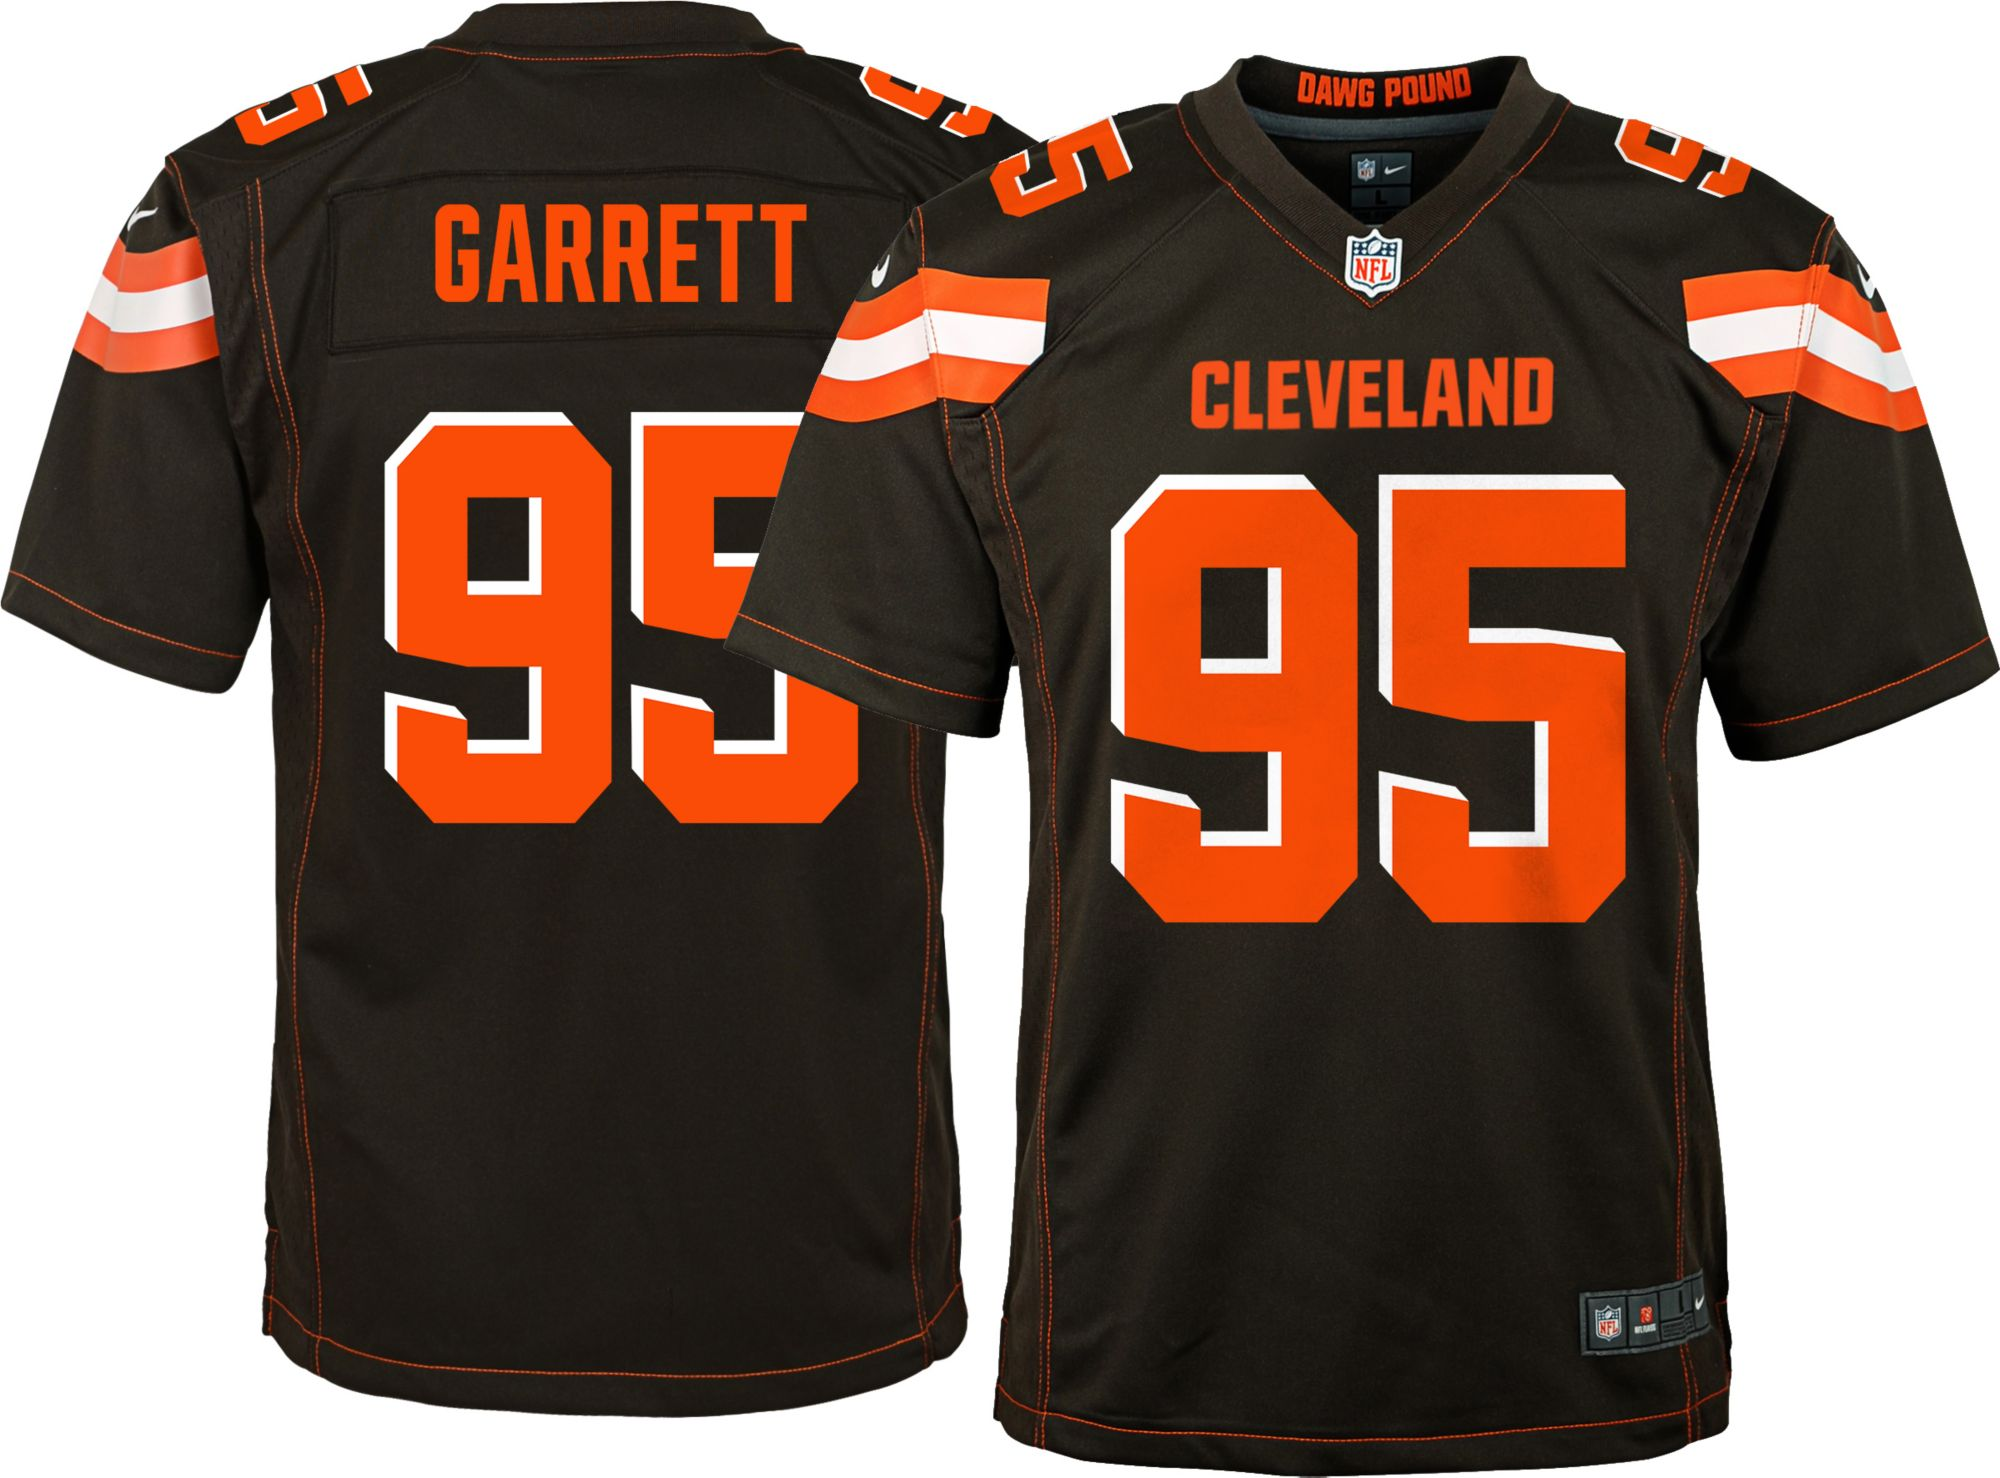 myles garrett jersey orange